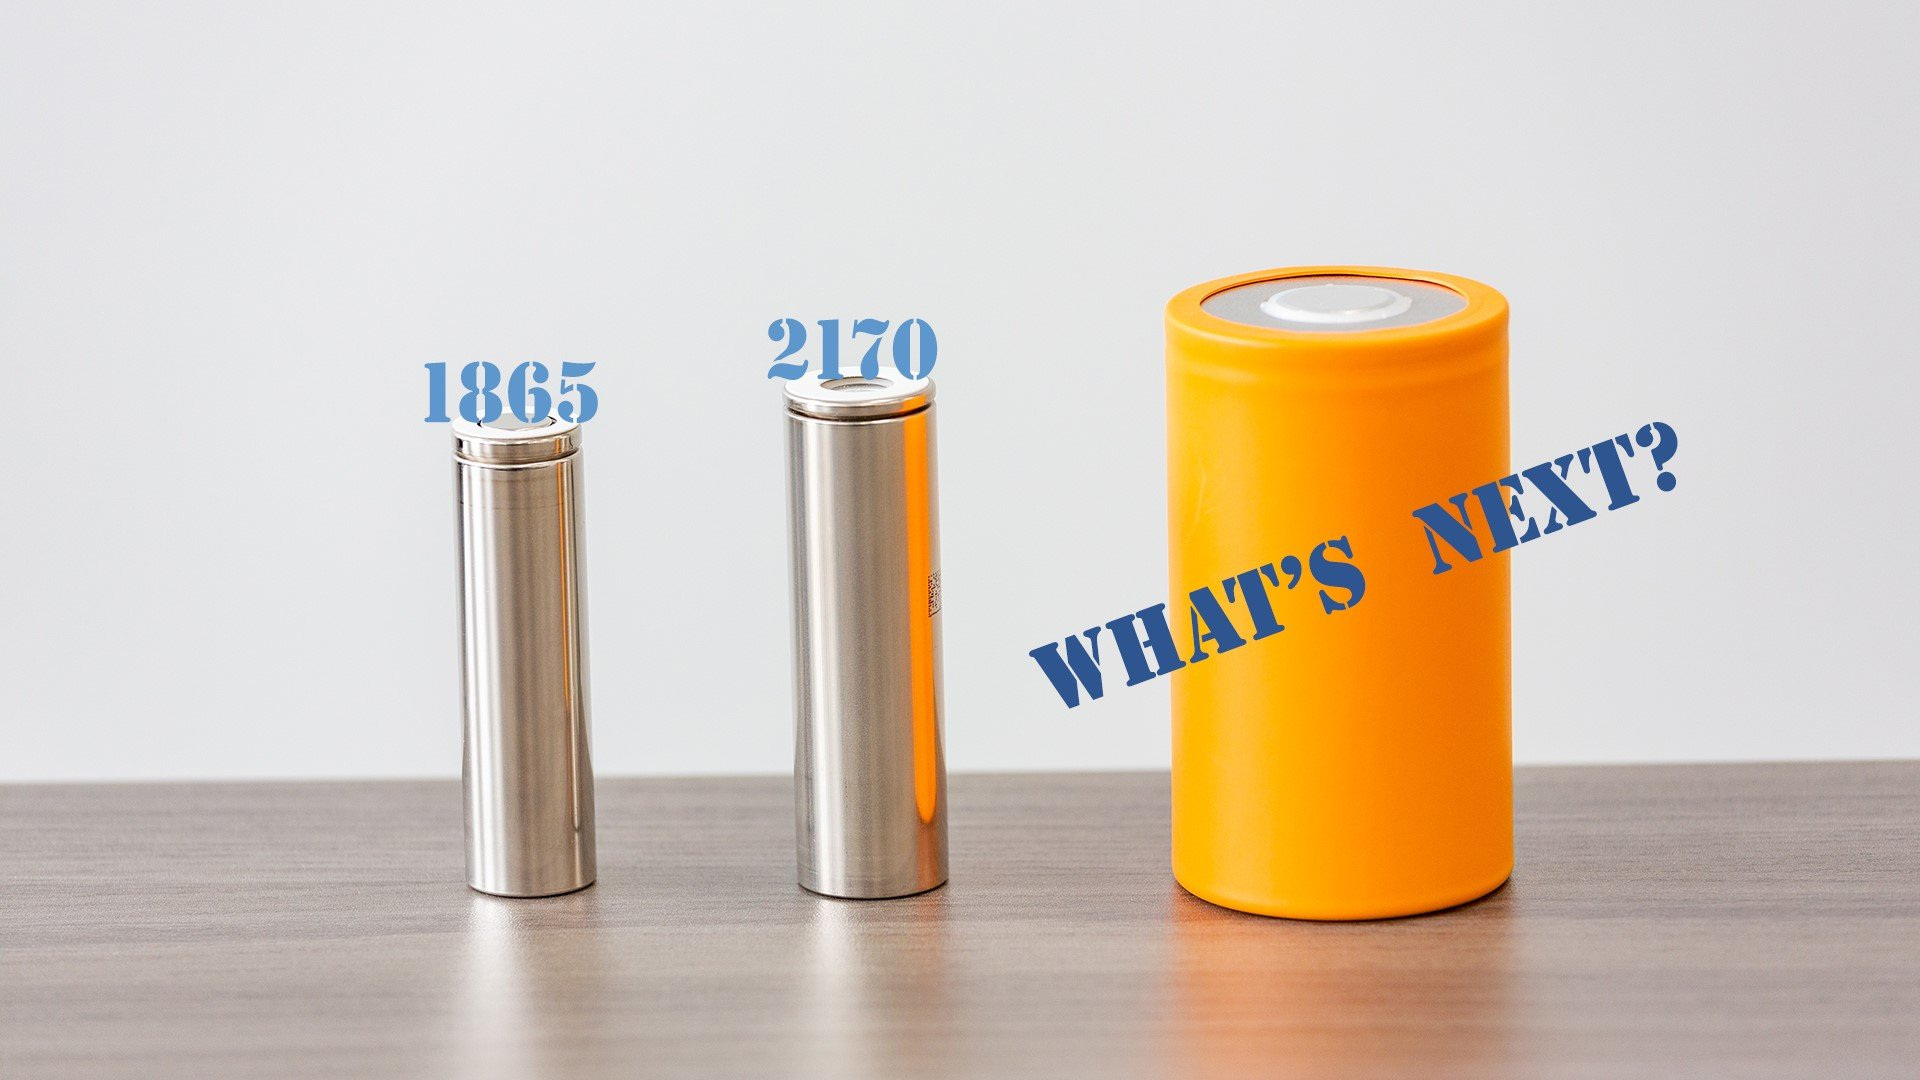 Photo: From left: the 1865, 2170 and a mock-up of the next generation of large cylindrical automotive batteries.